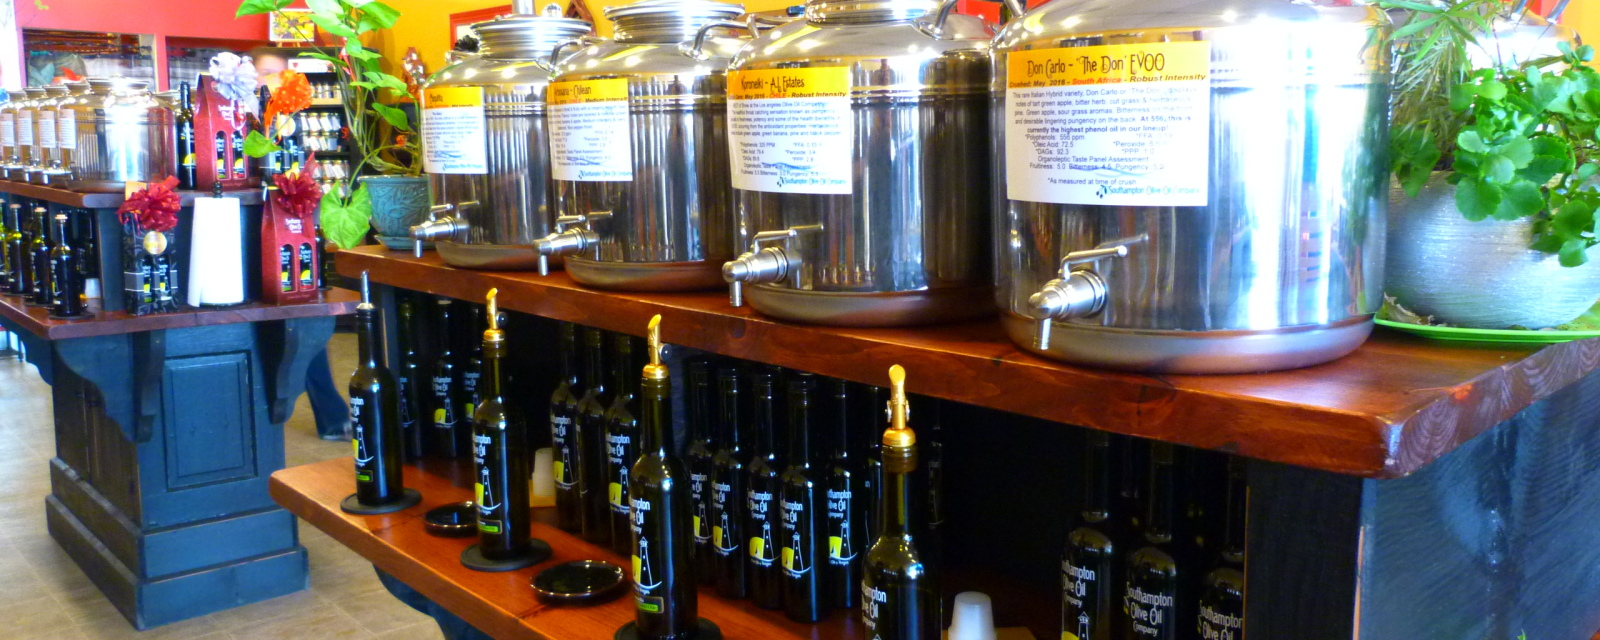 Over 50 Artisan Oils & Vinegars On Site